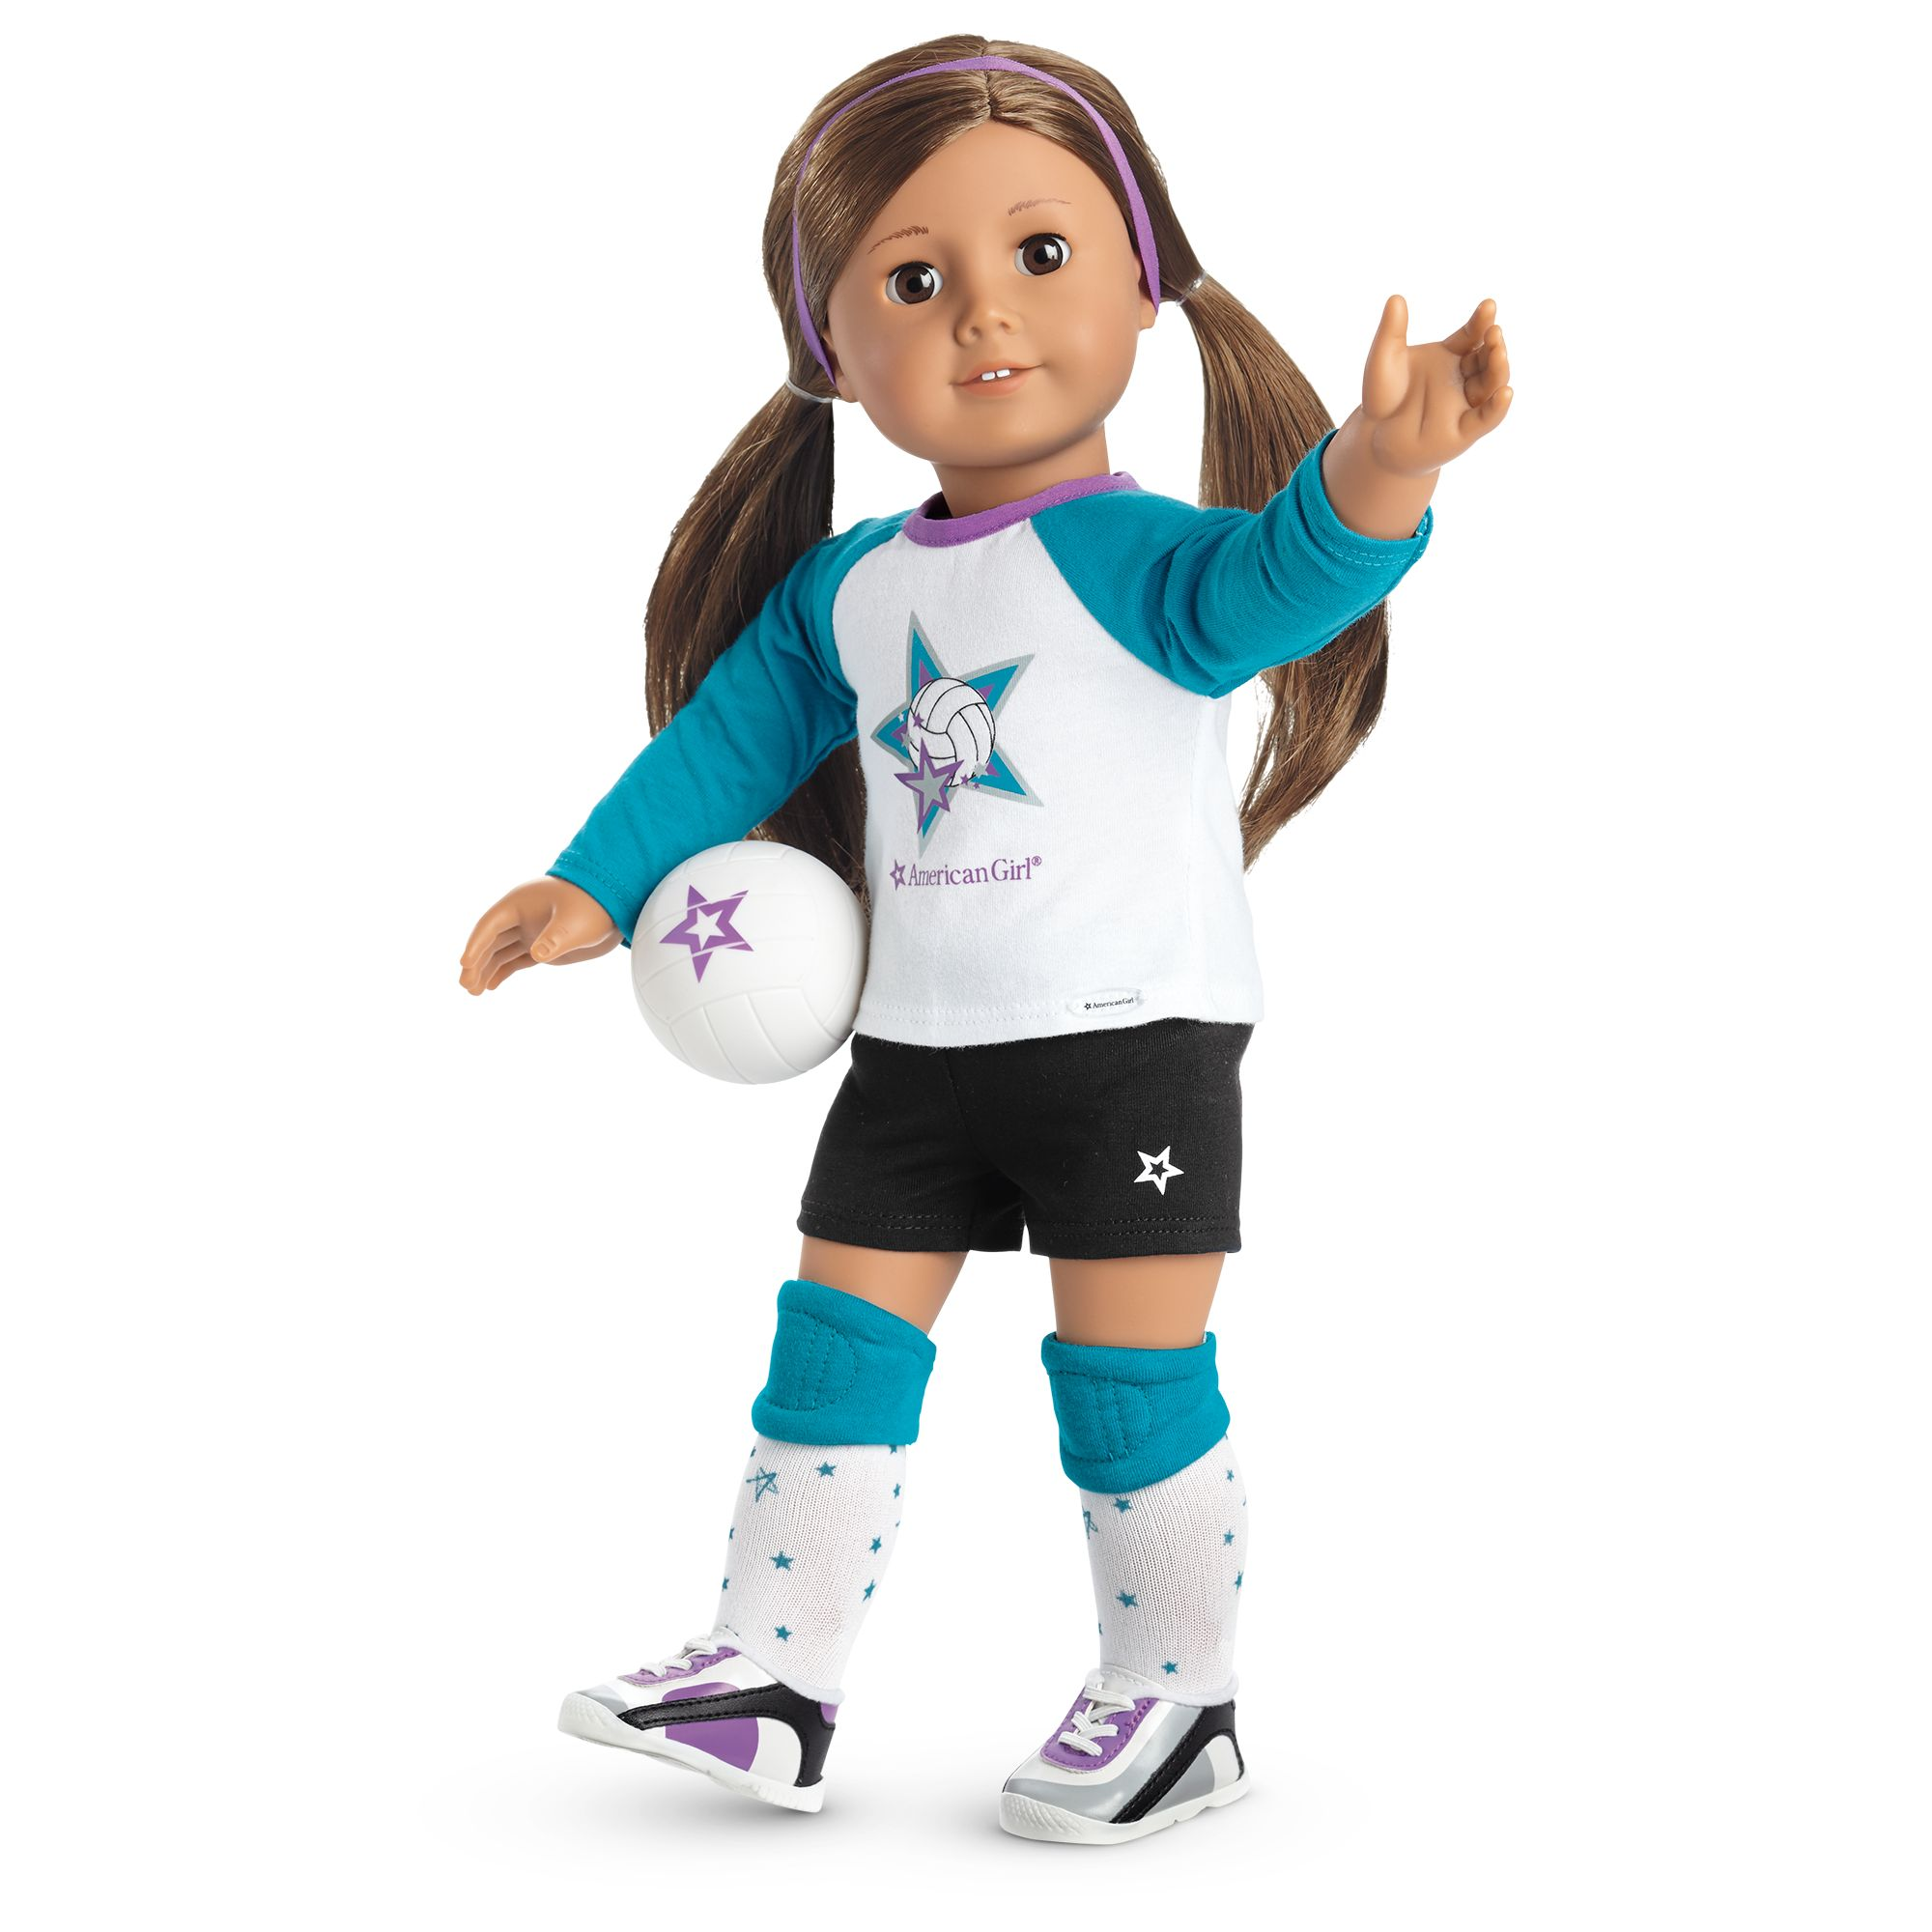 Star Player Volleyball Outfit